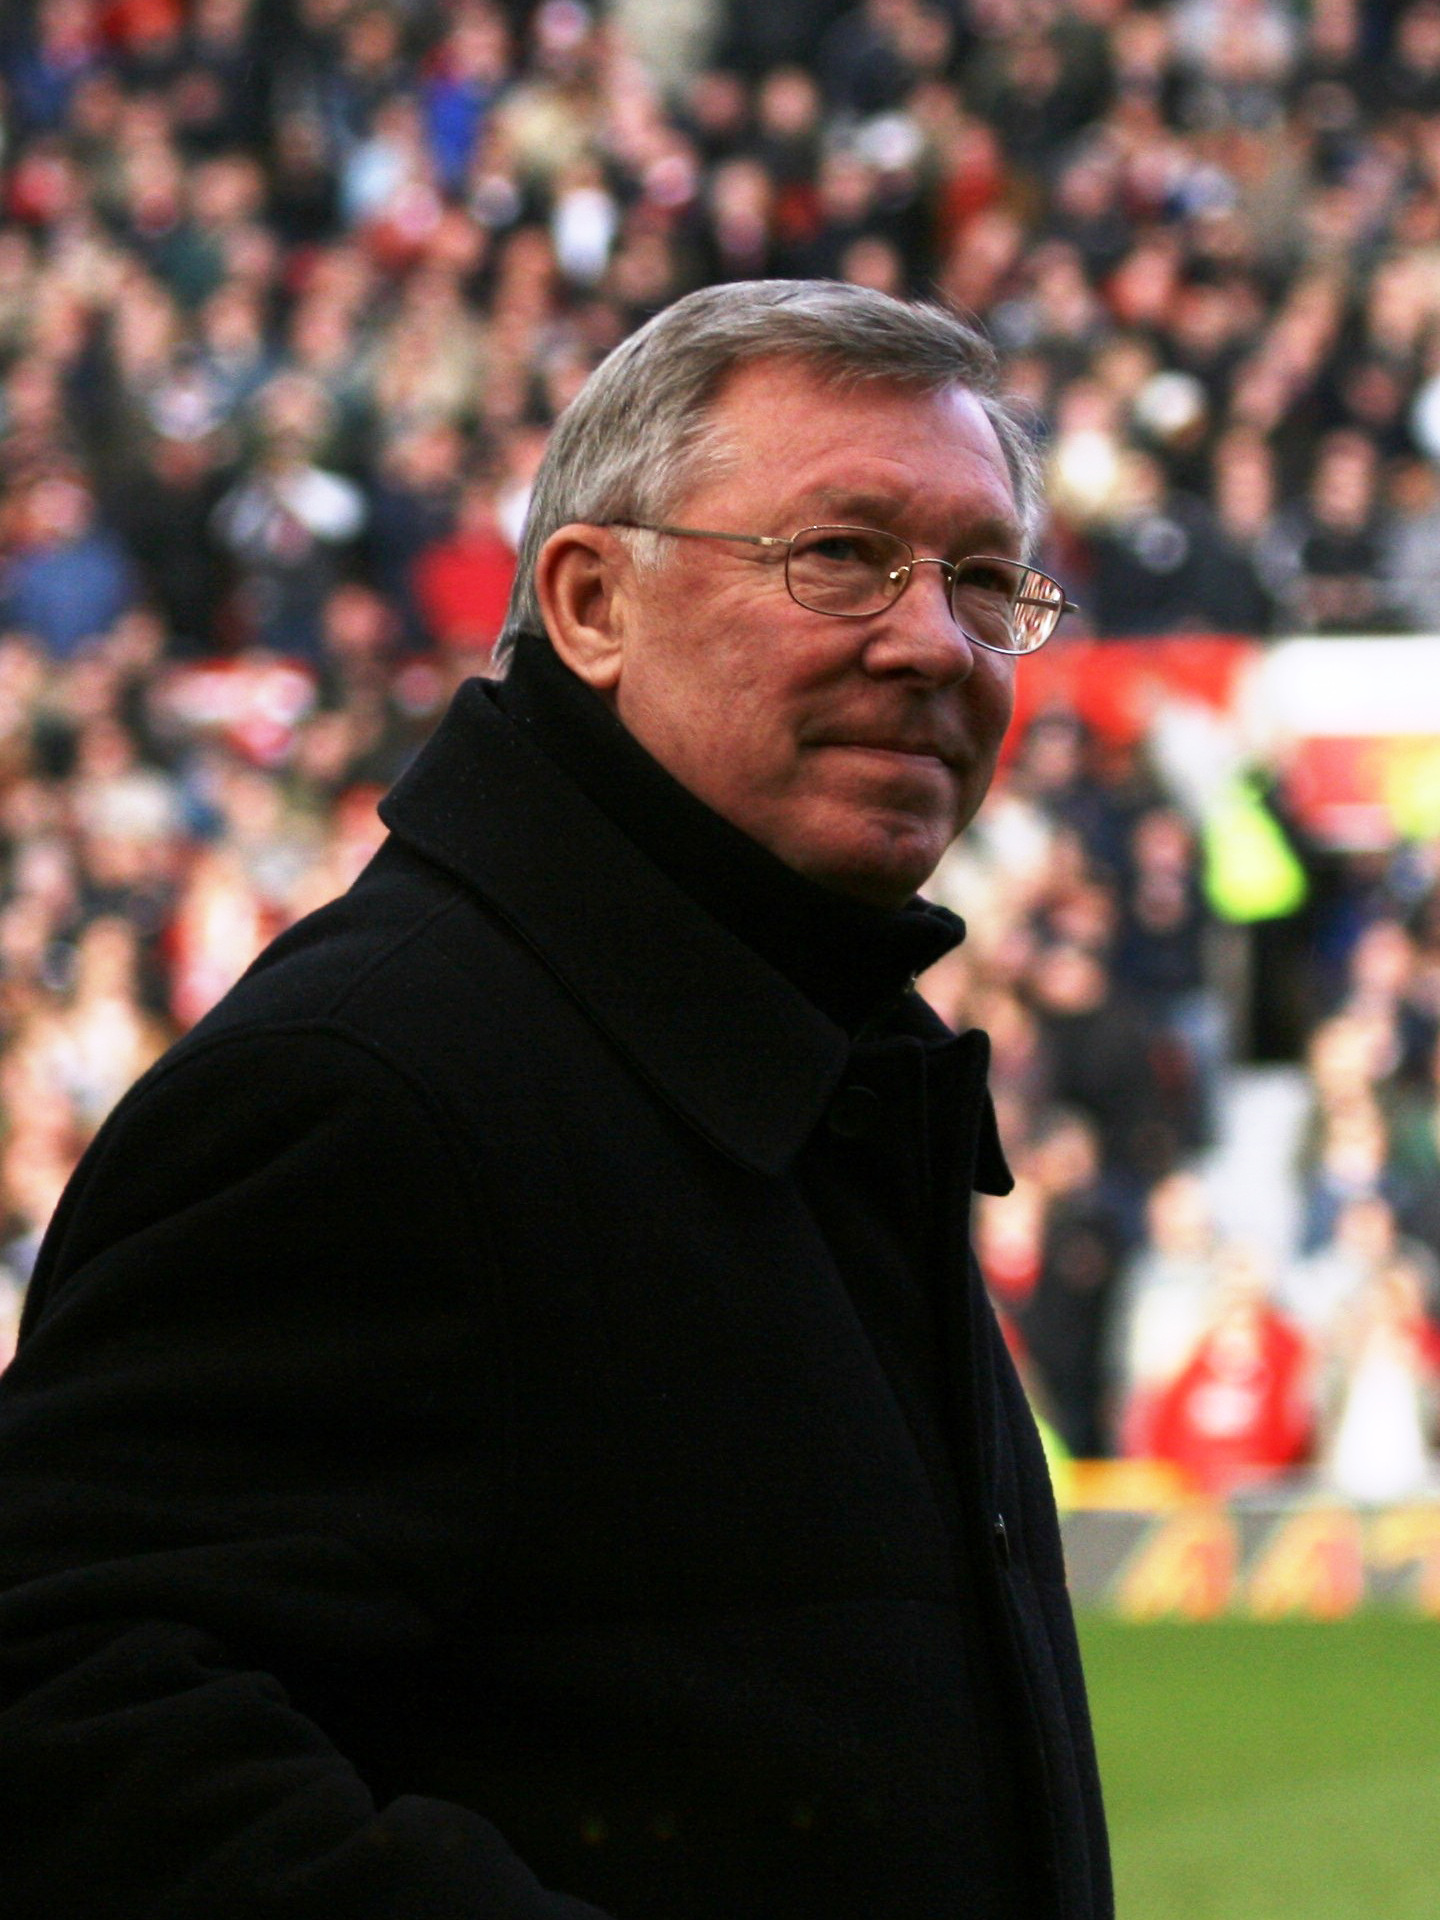 The 76-year old son of father Alexander Beaton Ferguson and mother Elizabeth Ferguson Sir Alex Ferguson in 2018 photo. Sir Alex Ferguson earned a  million dollar salary - leaving the net worth at 50 million in 2018